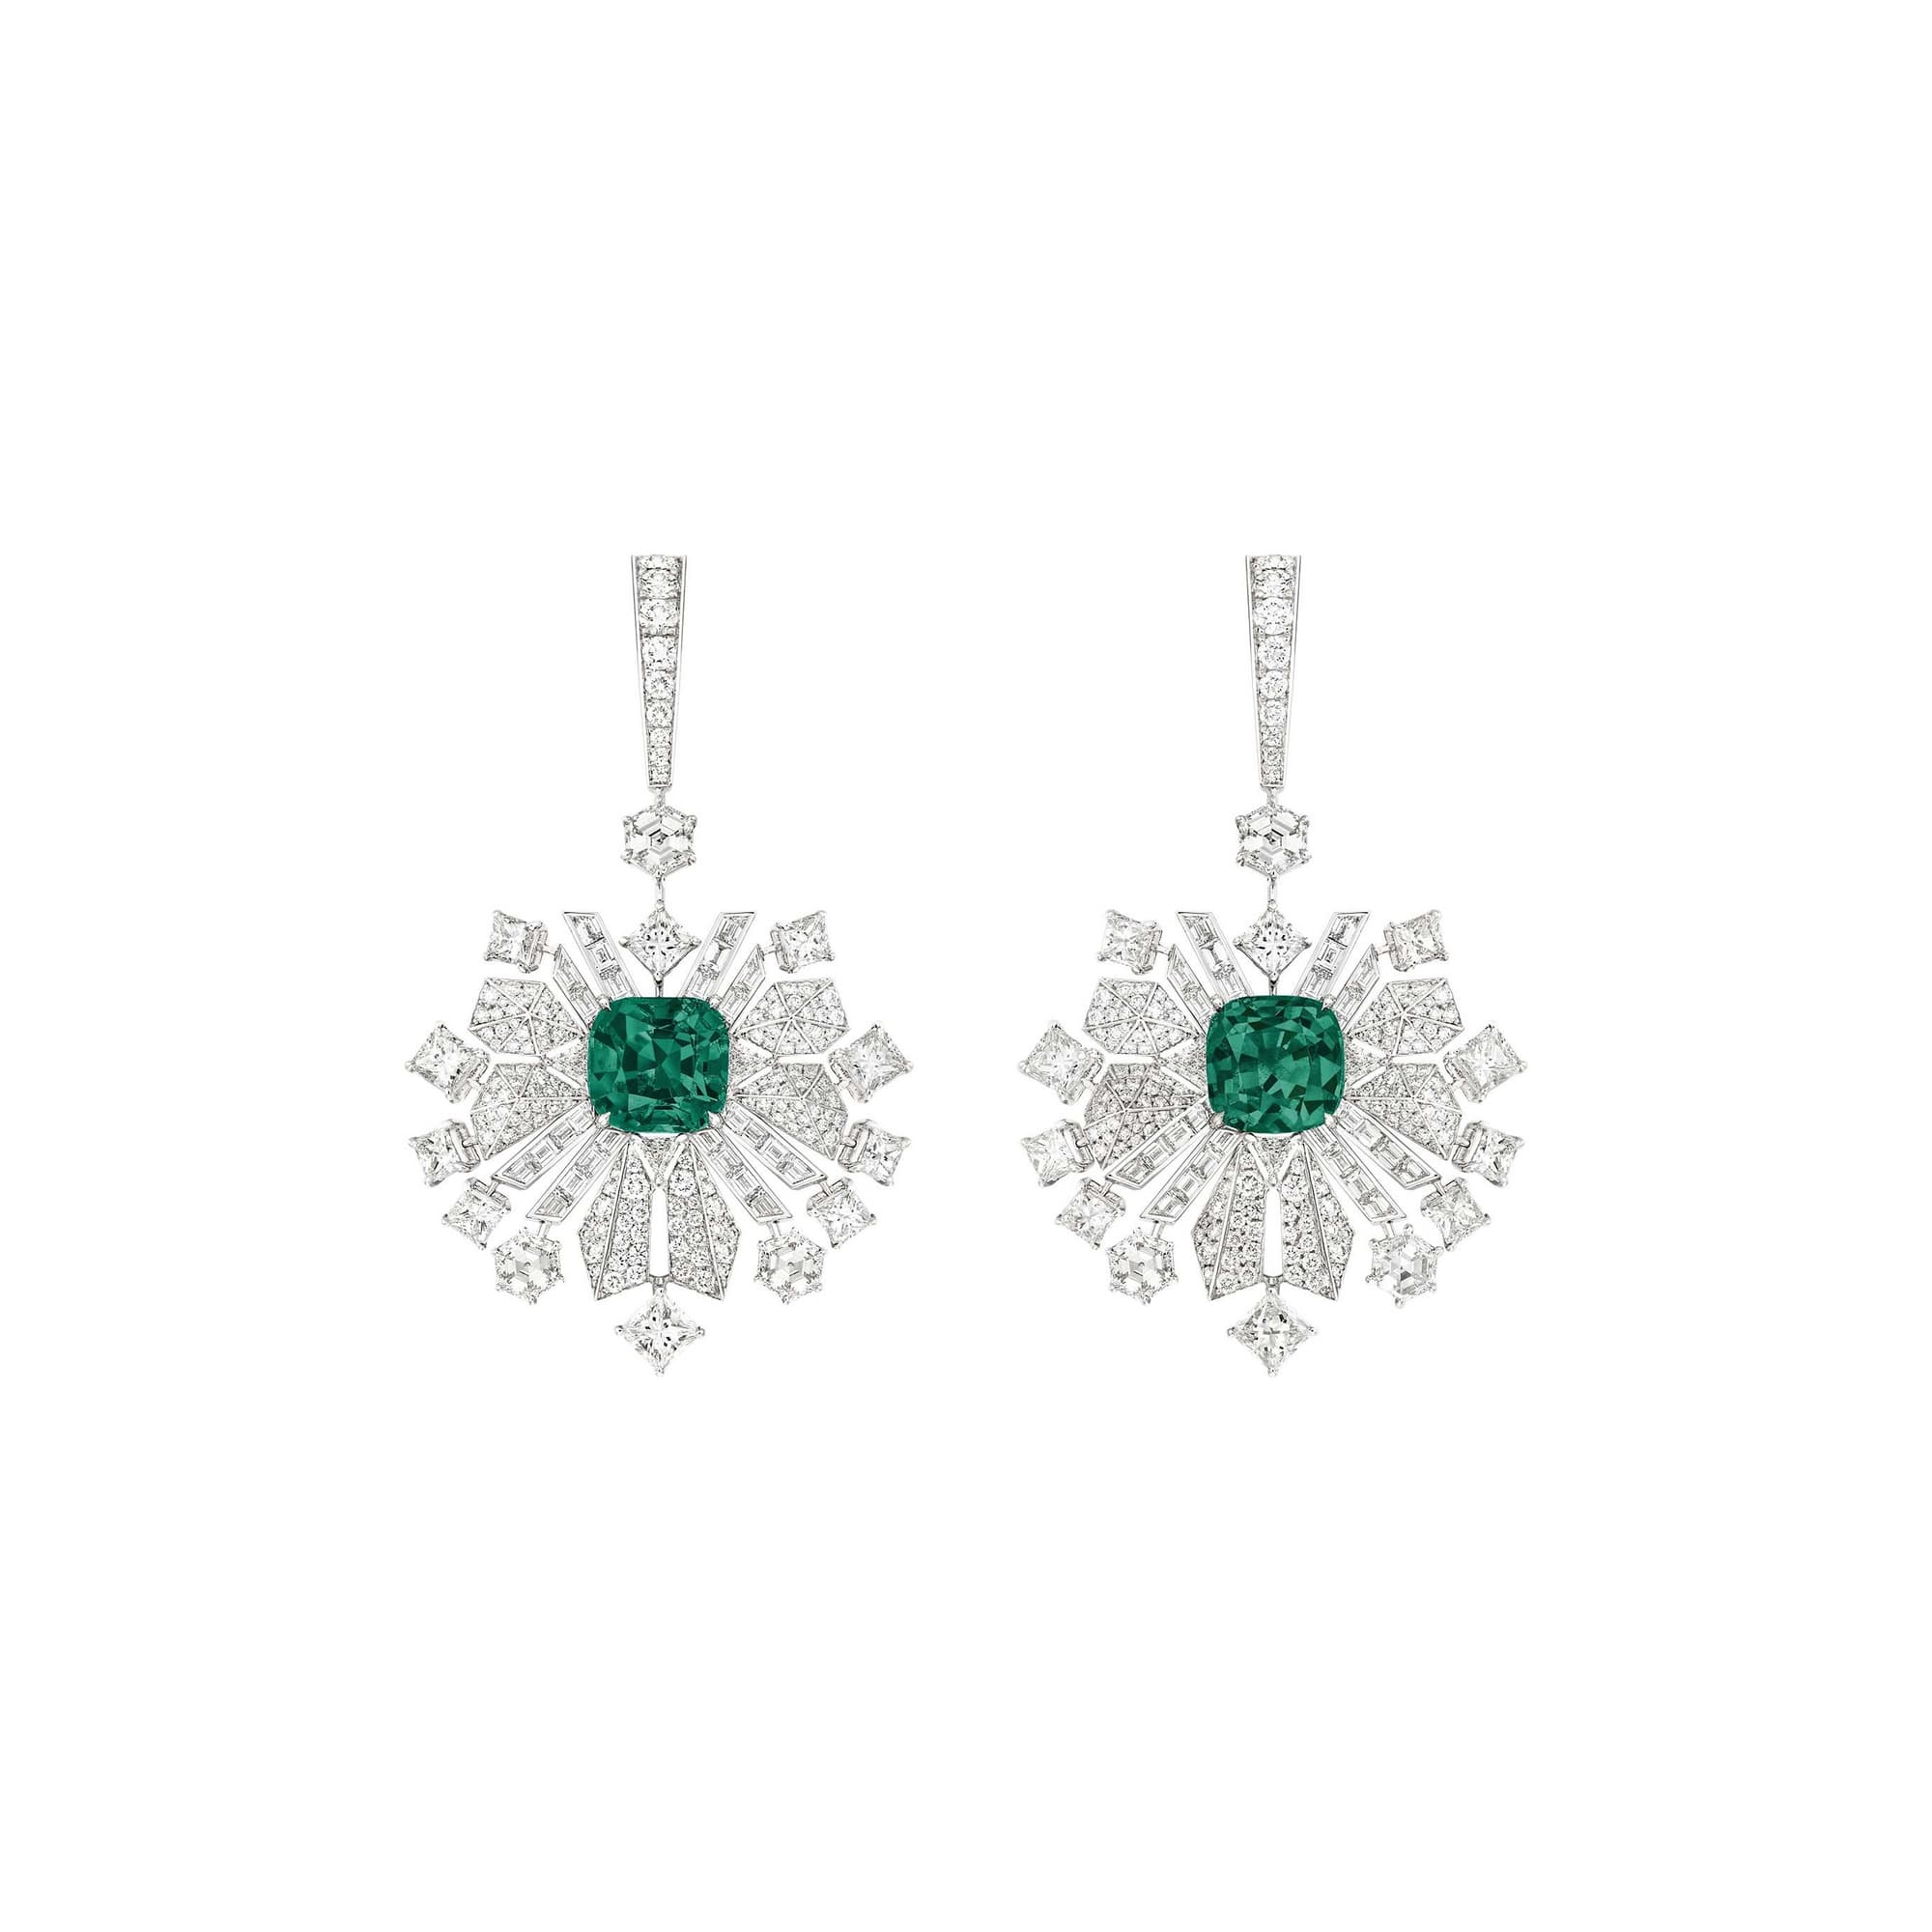 piaget high jewellery diamond earrings